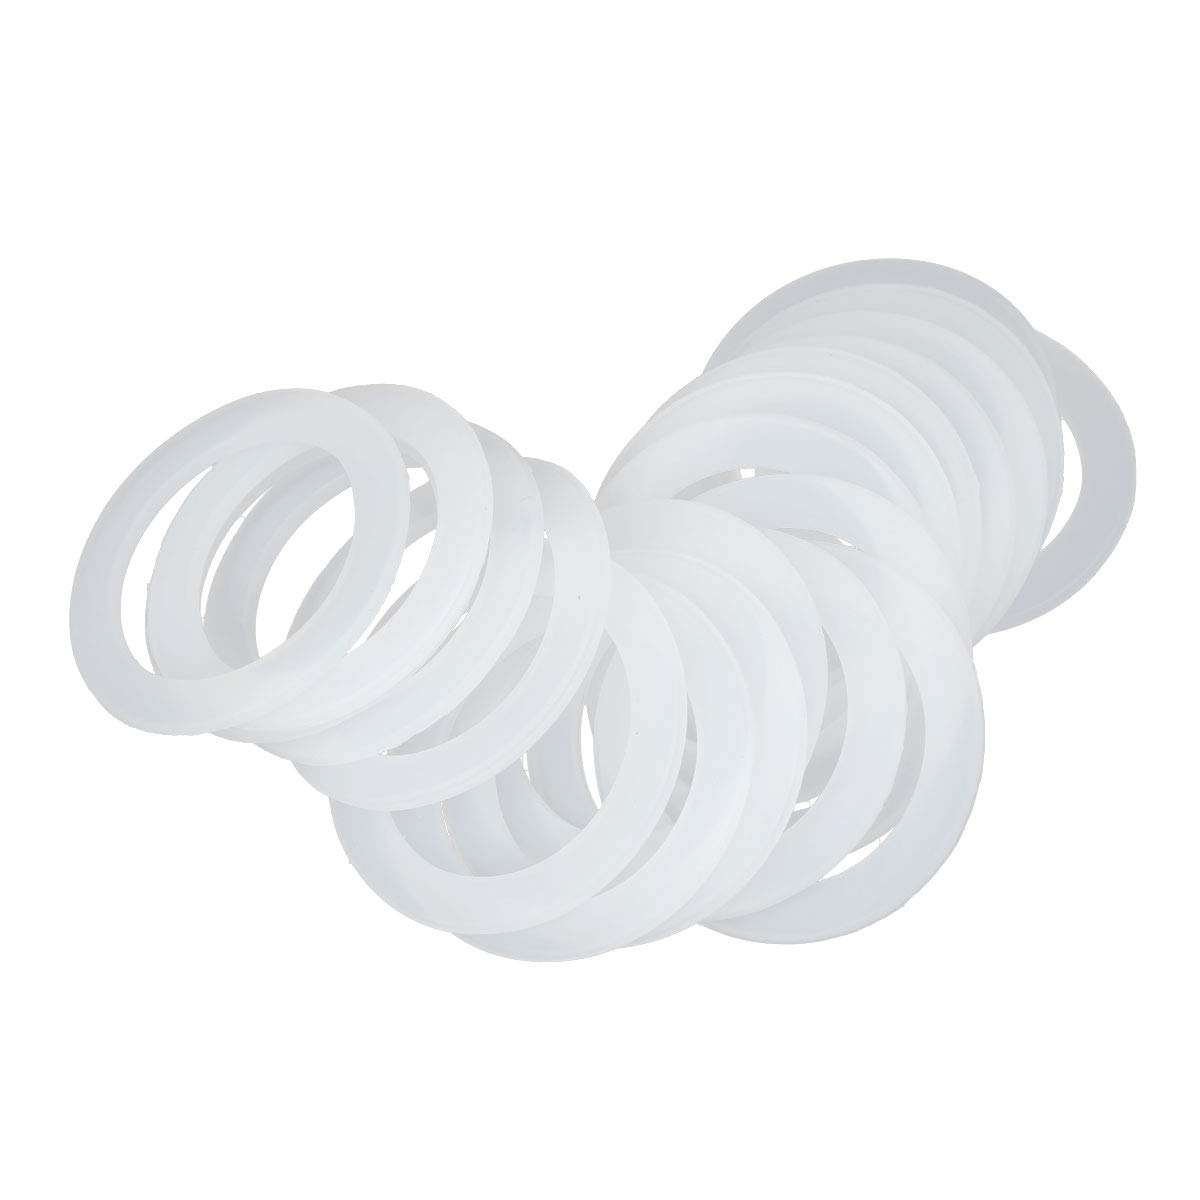 YiZYiF 20Pcs Reusable Leak Proof Silicone Sealing O-Rings Gaskets Replacement for Barrelled Water Cooler Water Jug Water Bottle Caps White One Size